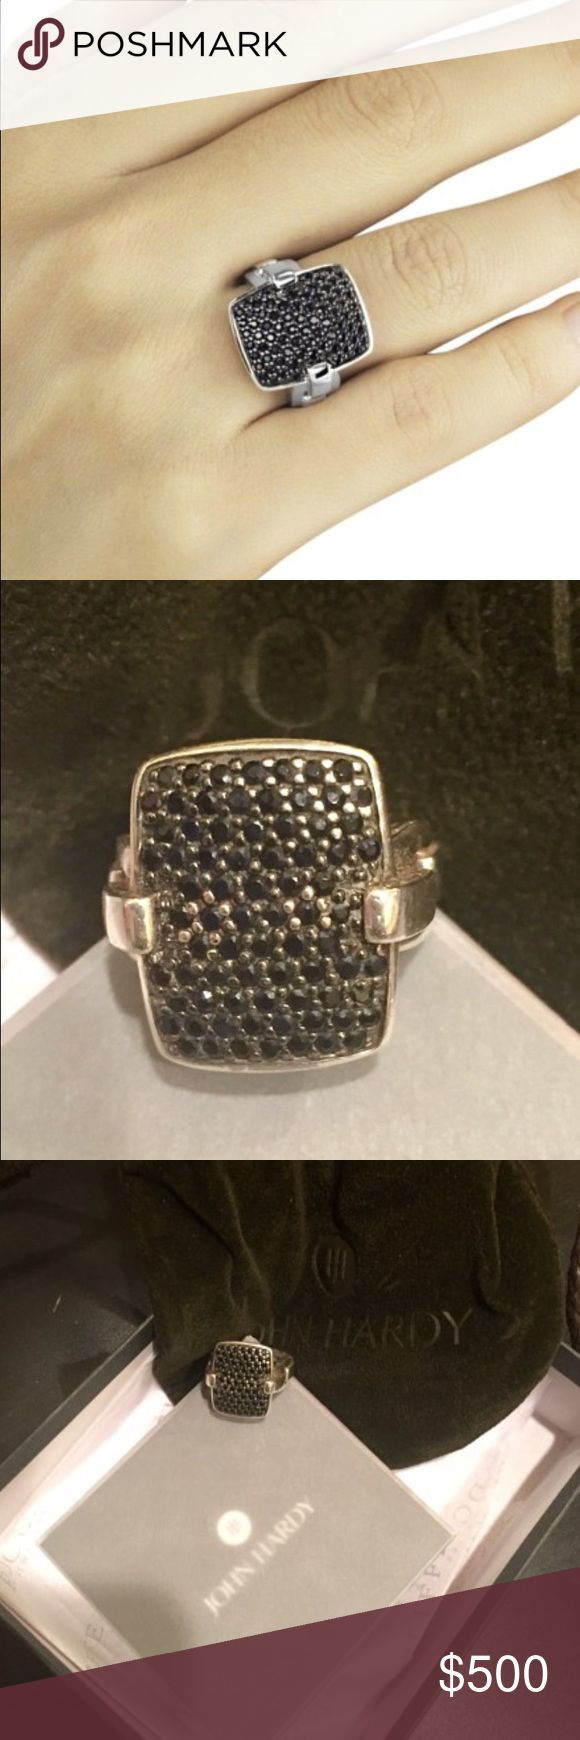 "John Hardy Classic Chain Lava Black Sapphire Ring John Hardy ring boasts a decadently detailed black sapphire front, which adds opulence to the collection's signature silver woven chain. Rectangular face with pave black sapphire, 18mm (7/10""), 1.672 total carat weight. John Hardy Jewelry Rings"